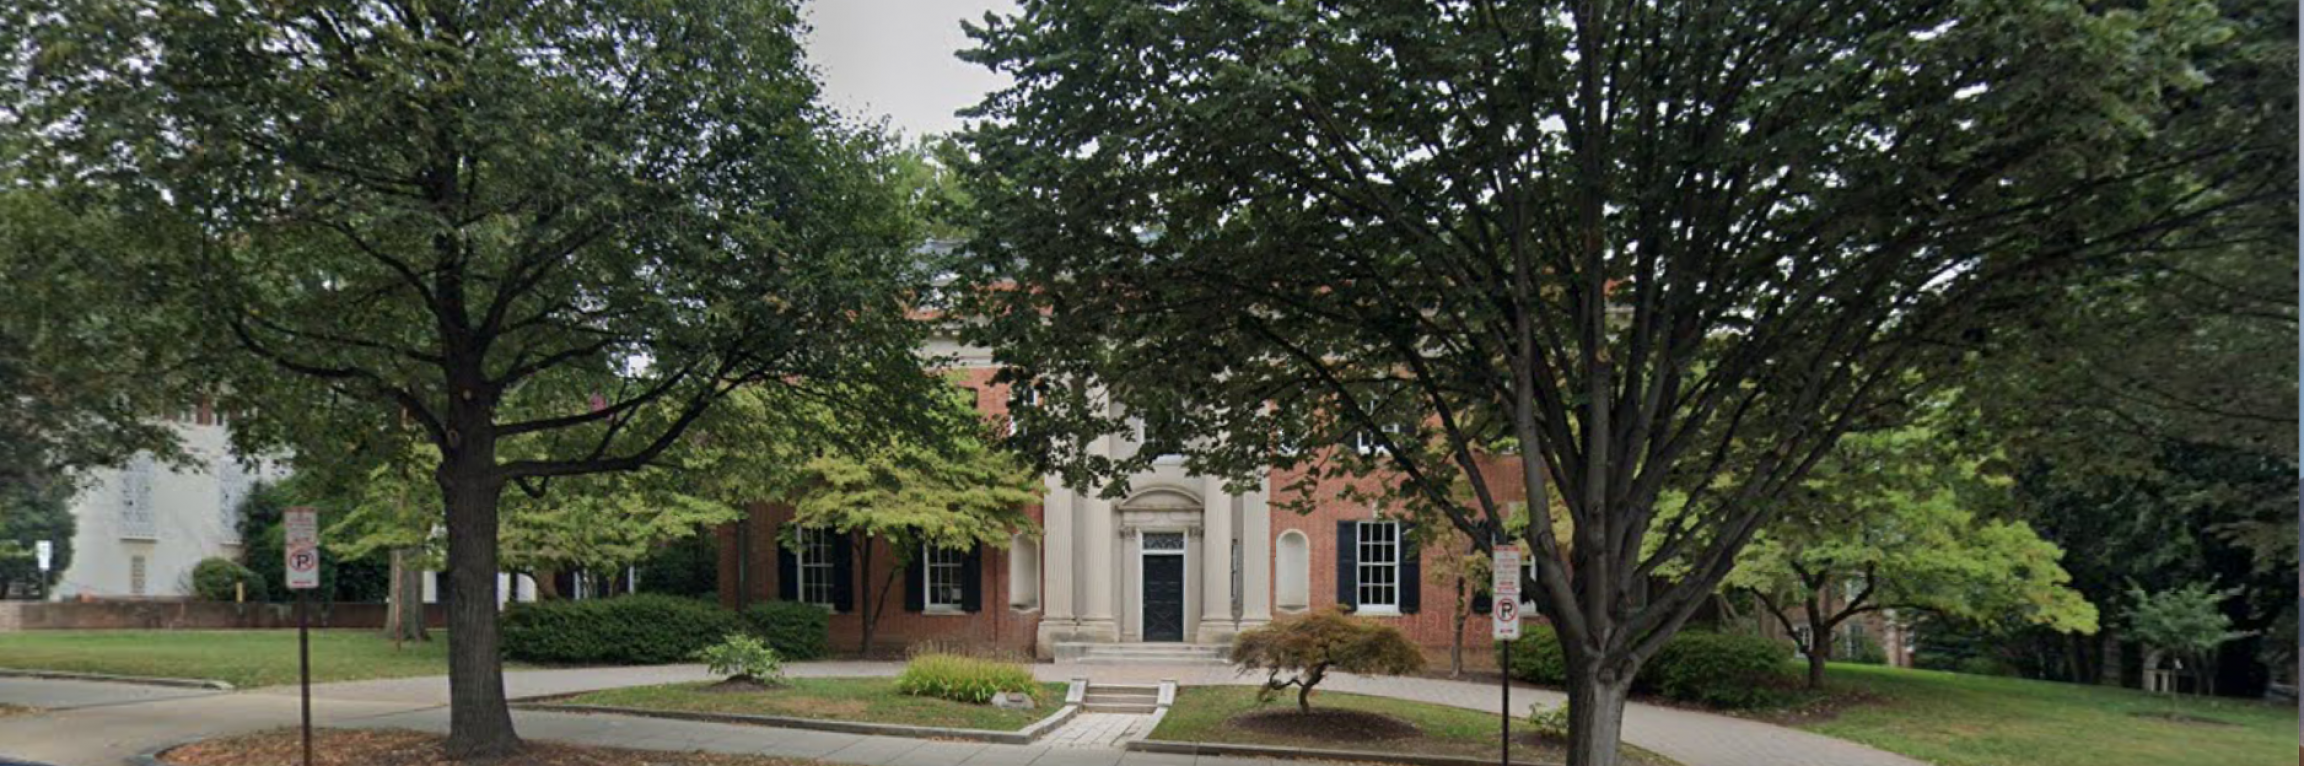 The former Iranian ambassador's residence in Washington, DC, has been empty for a long time.